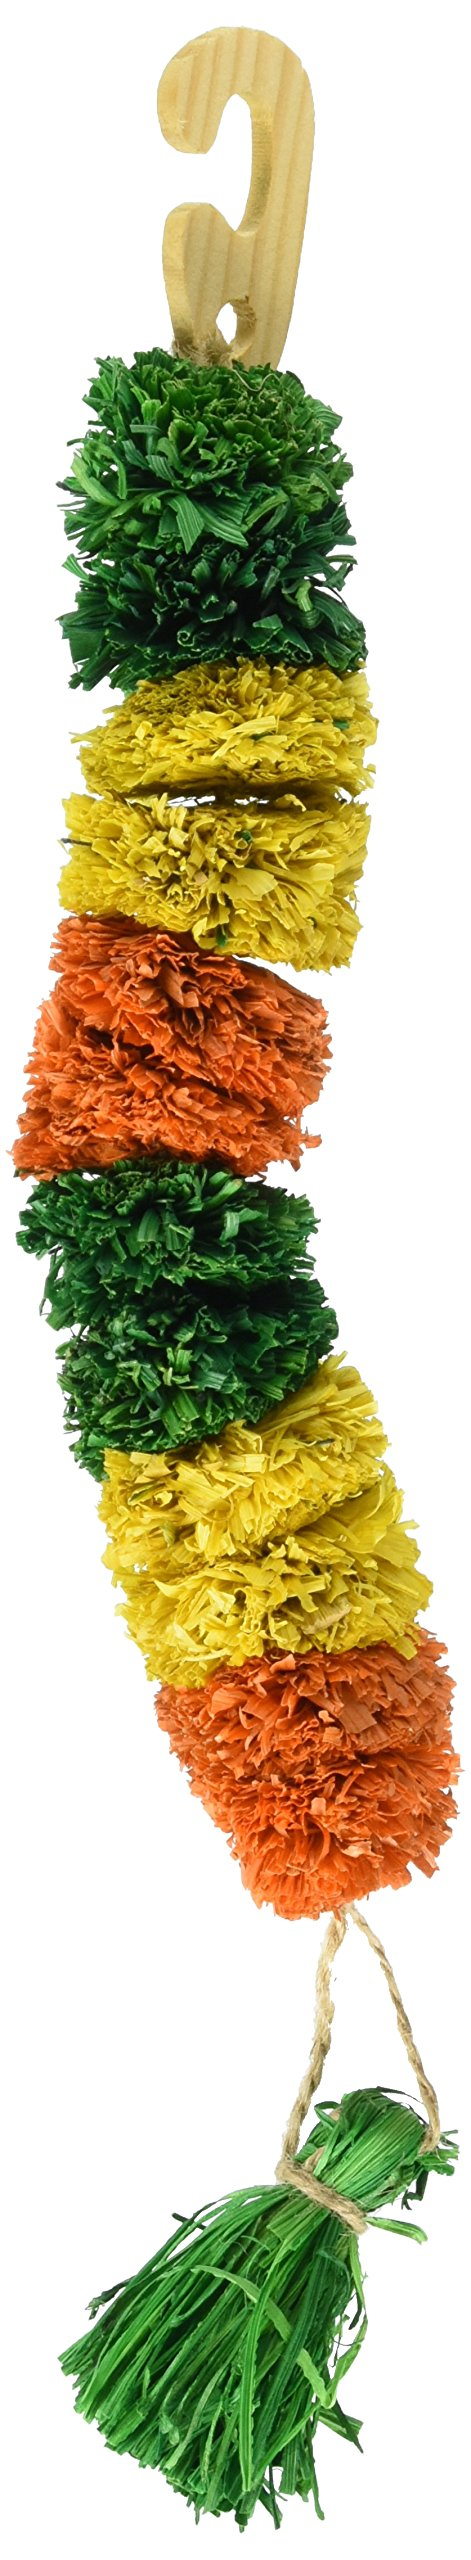 Ware Manufacturing Corn Streamers Chew Toy for Small Animals